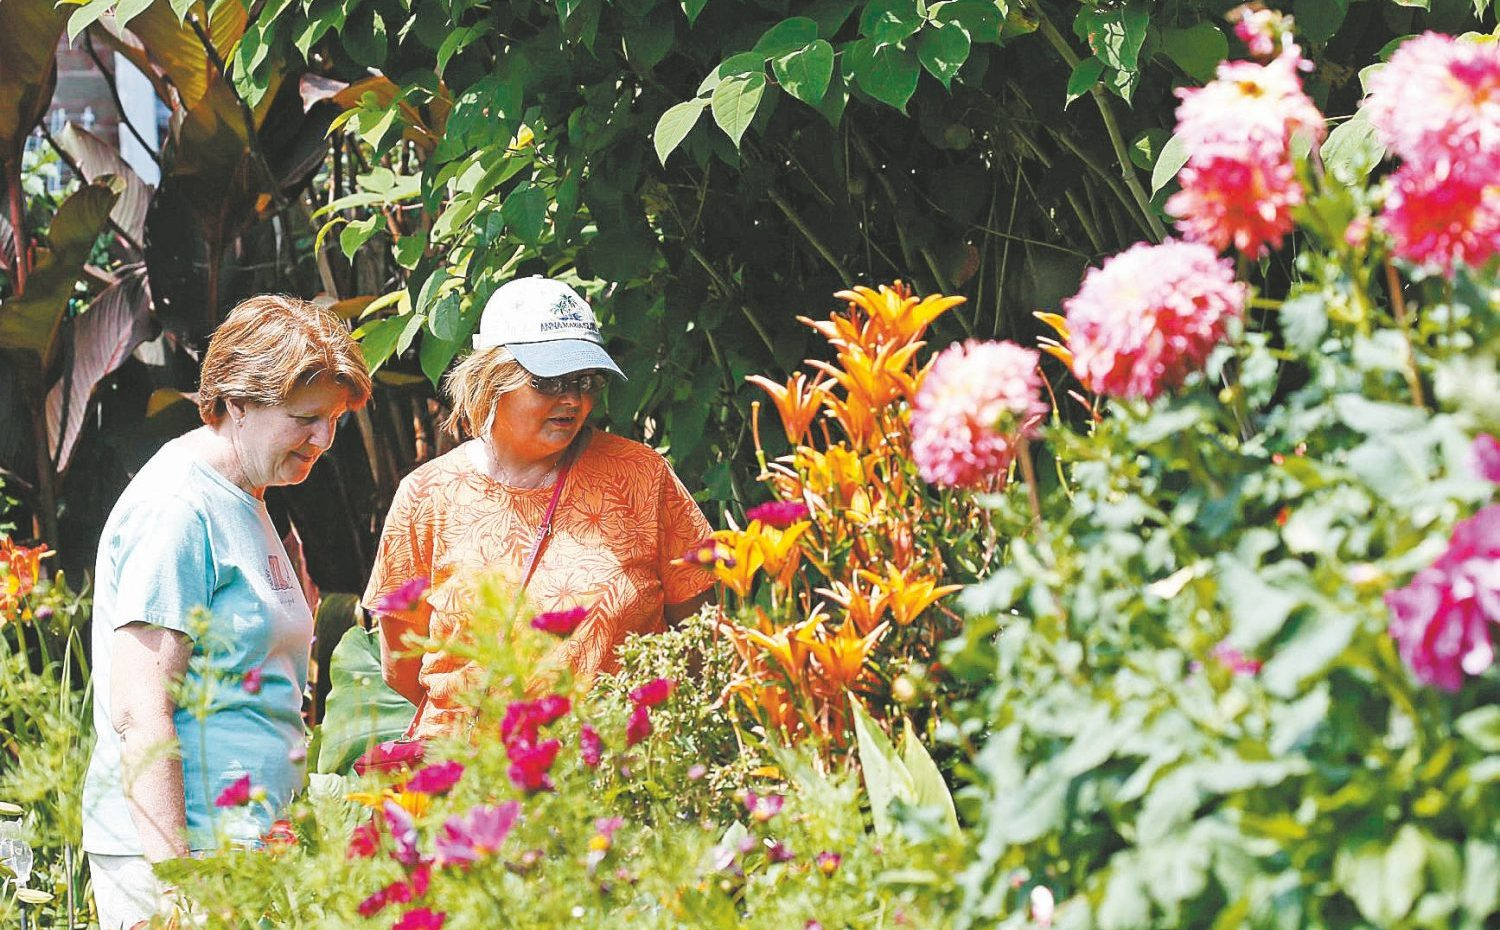 Two people enjoy the 2015 Garden Walk, unbeknownst that during the same event, a different kind of seed was being planted in the mind of Jeffrey Gundlach. (Derek Gee/Buffalo News)